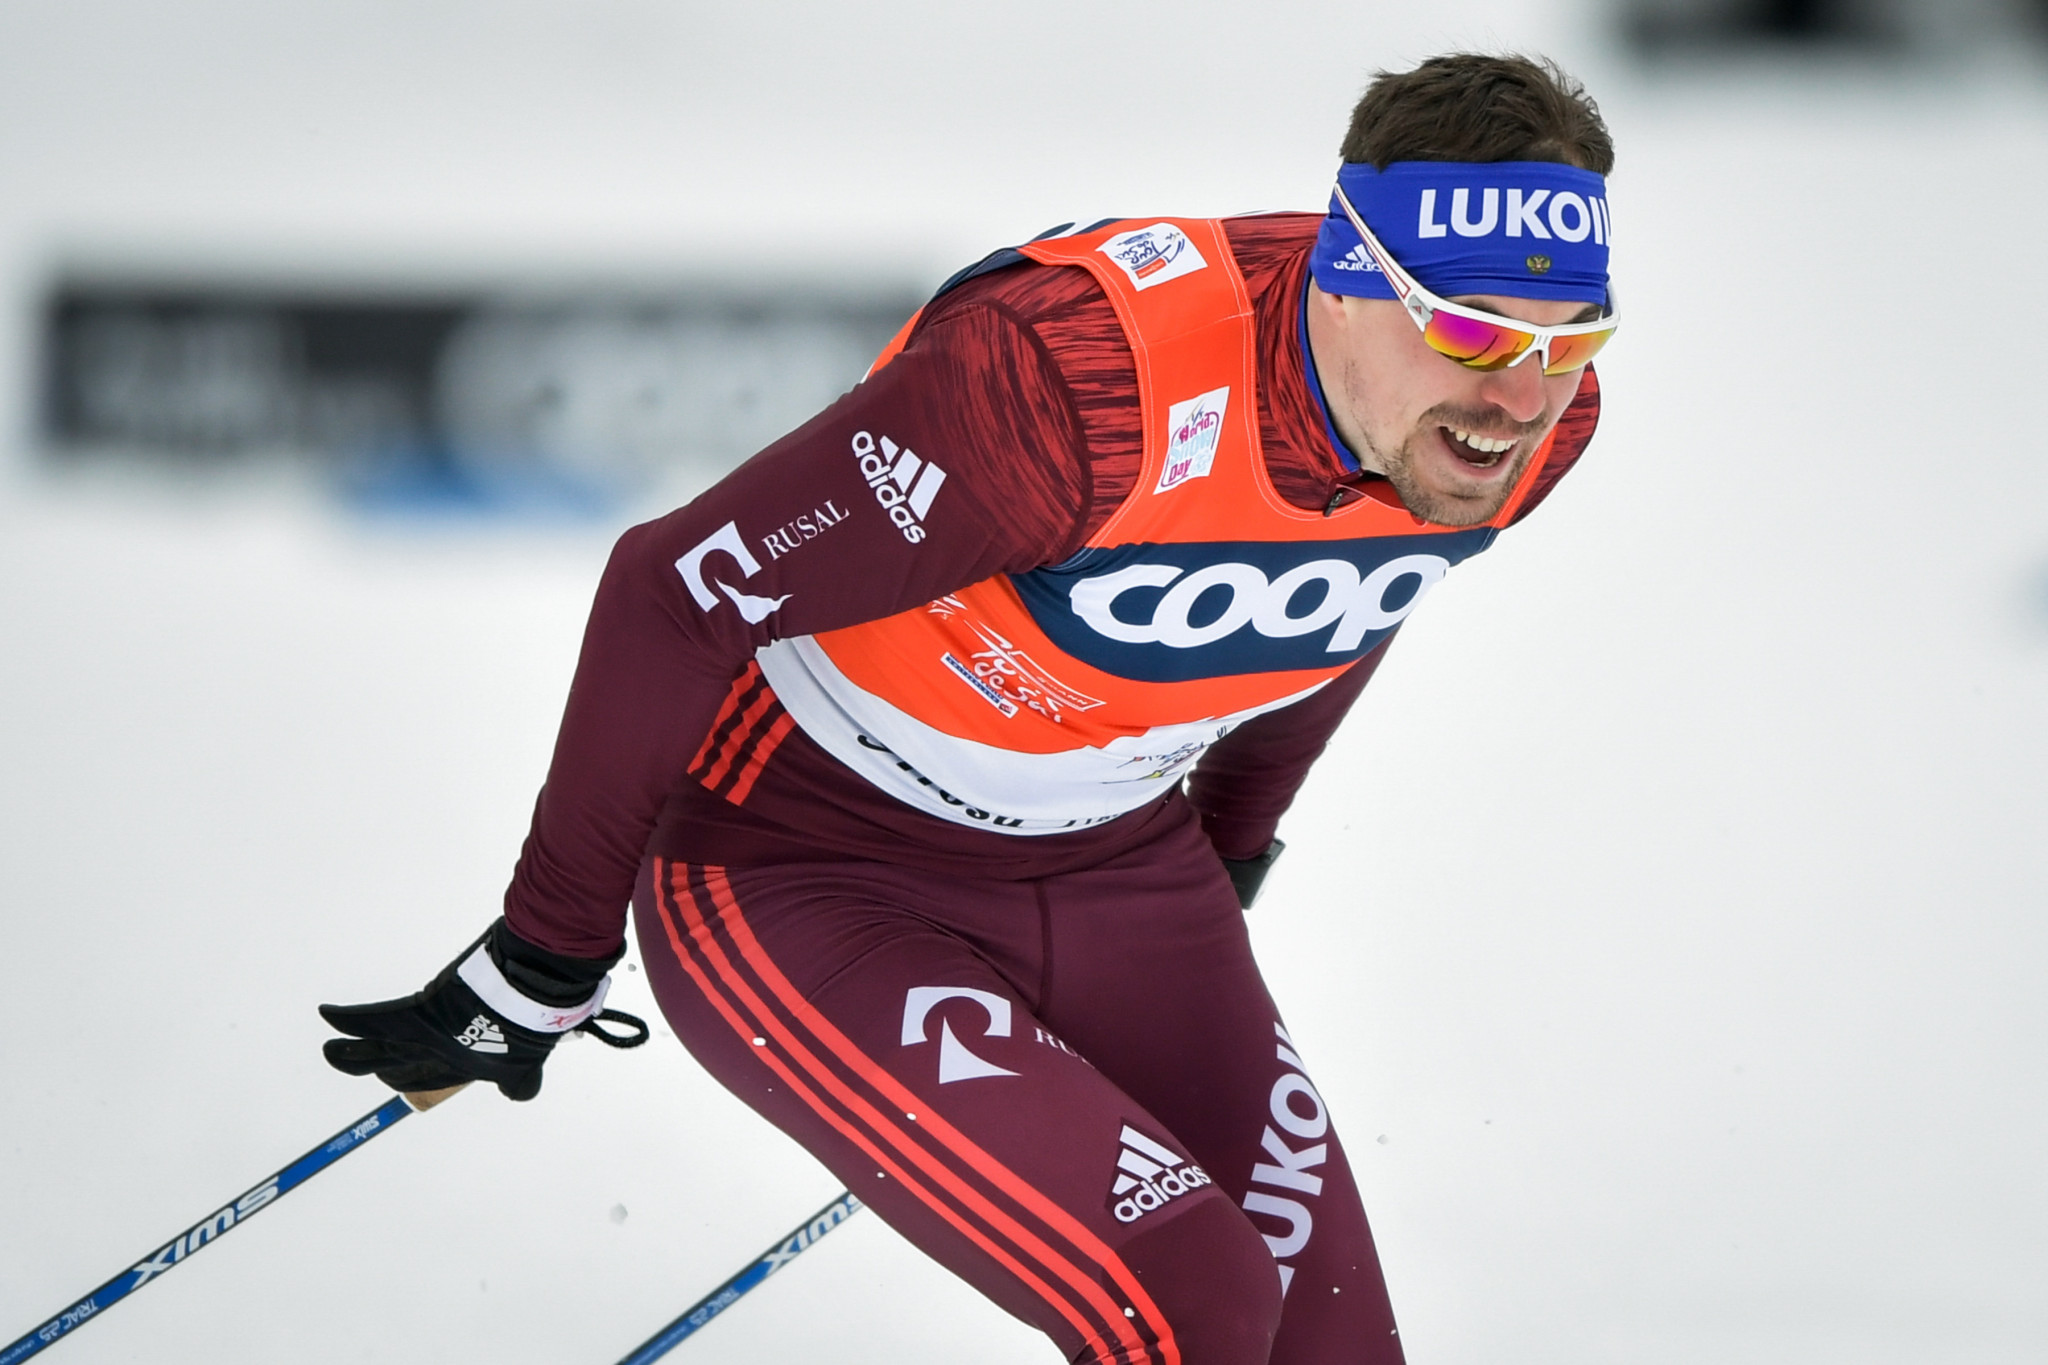 Cologna, Oestberg win Tour de Ski pursuits and lead overall